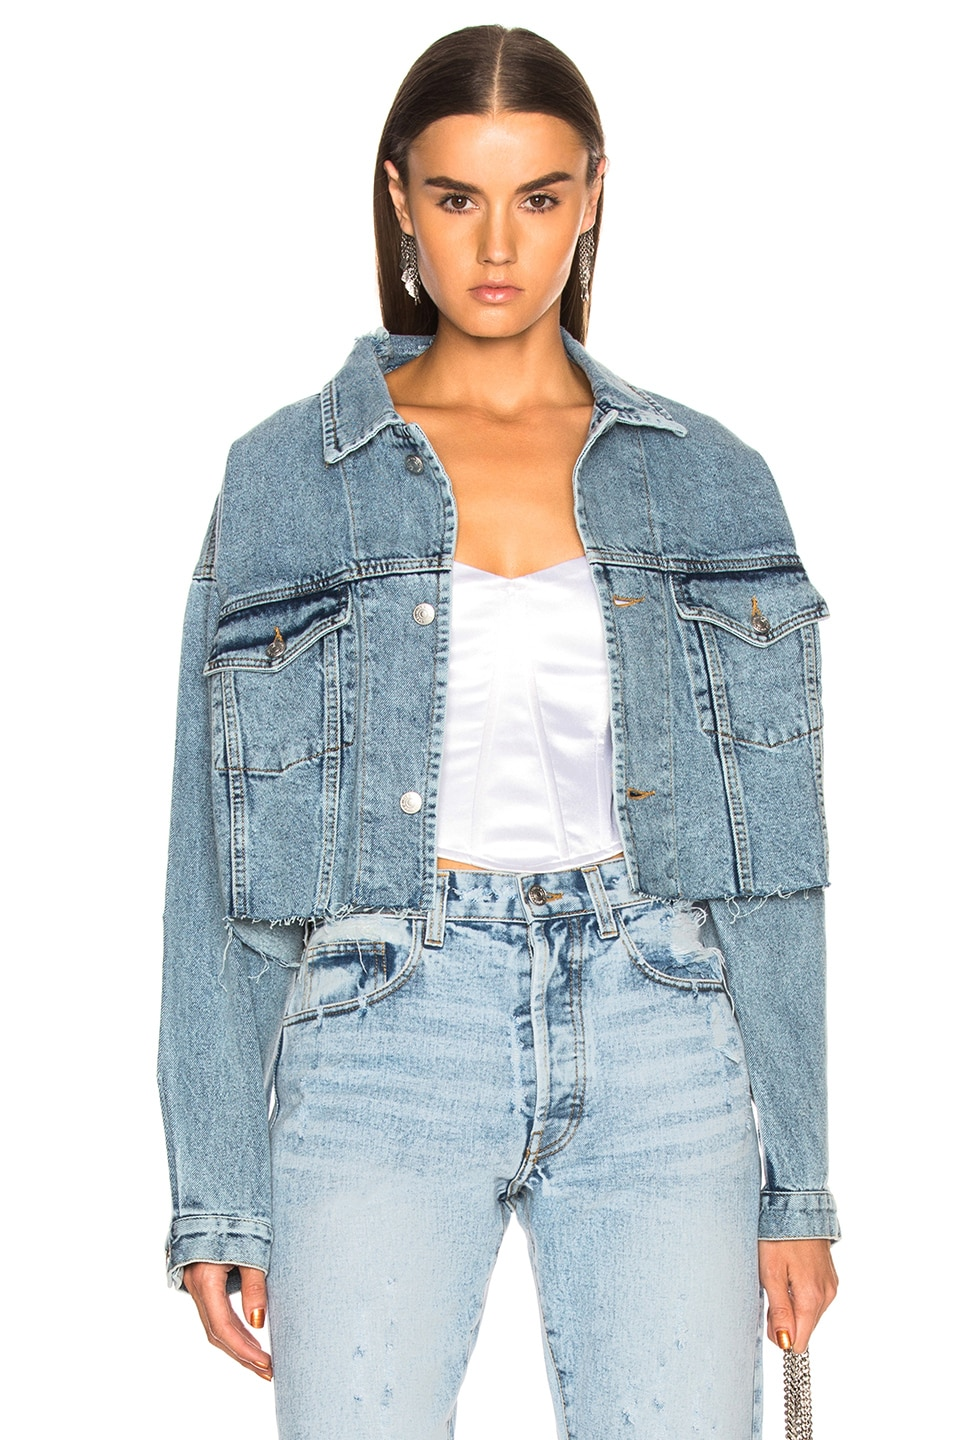 Image 1 of Palmer Girls x Miss Sixty Vintage Cropped Denim Jacket in Light Wash